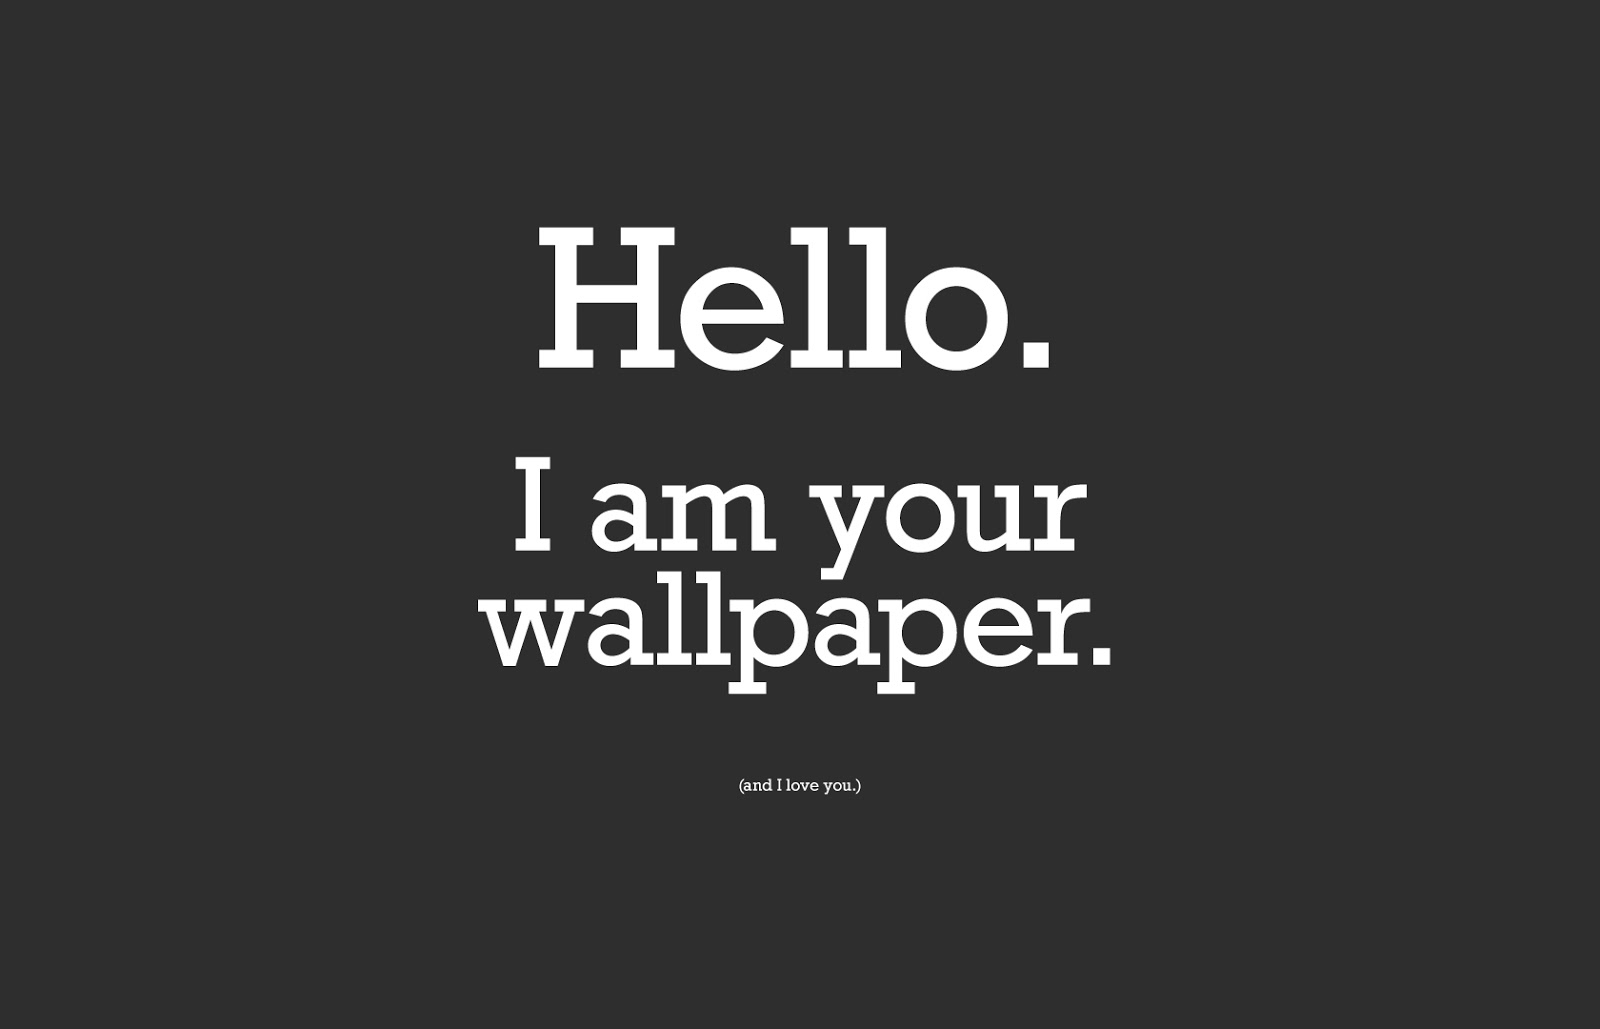 Funny Wallpaper Sayings